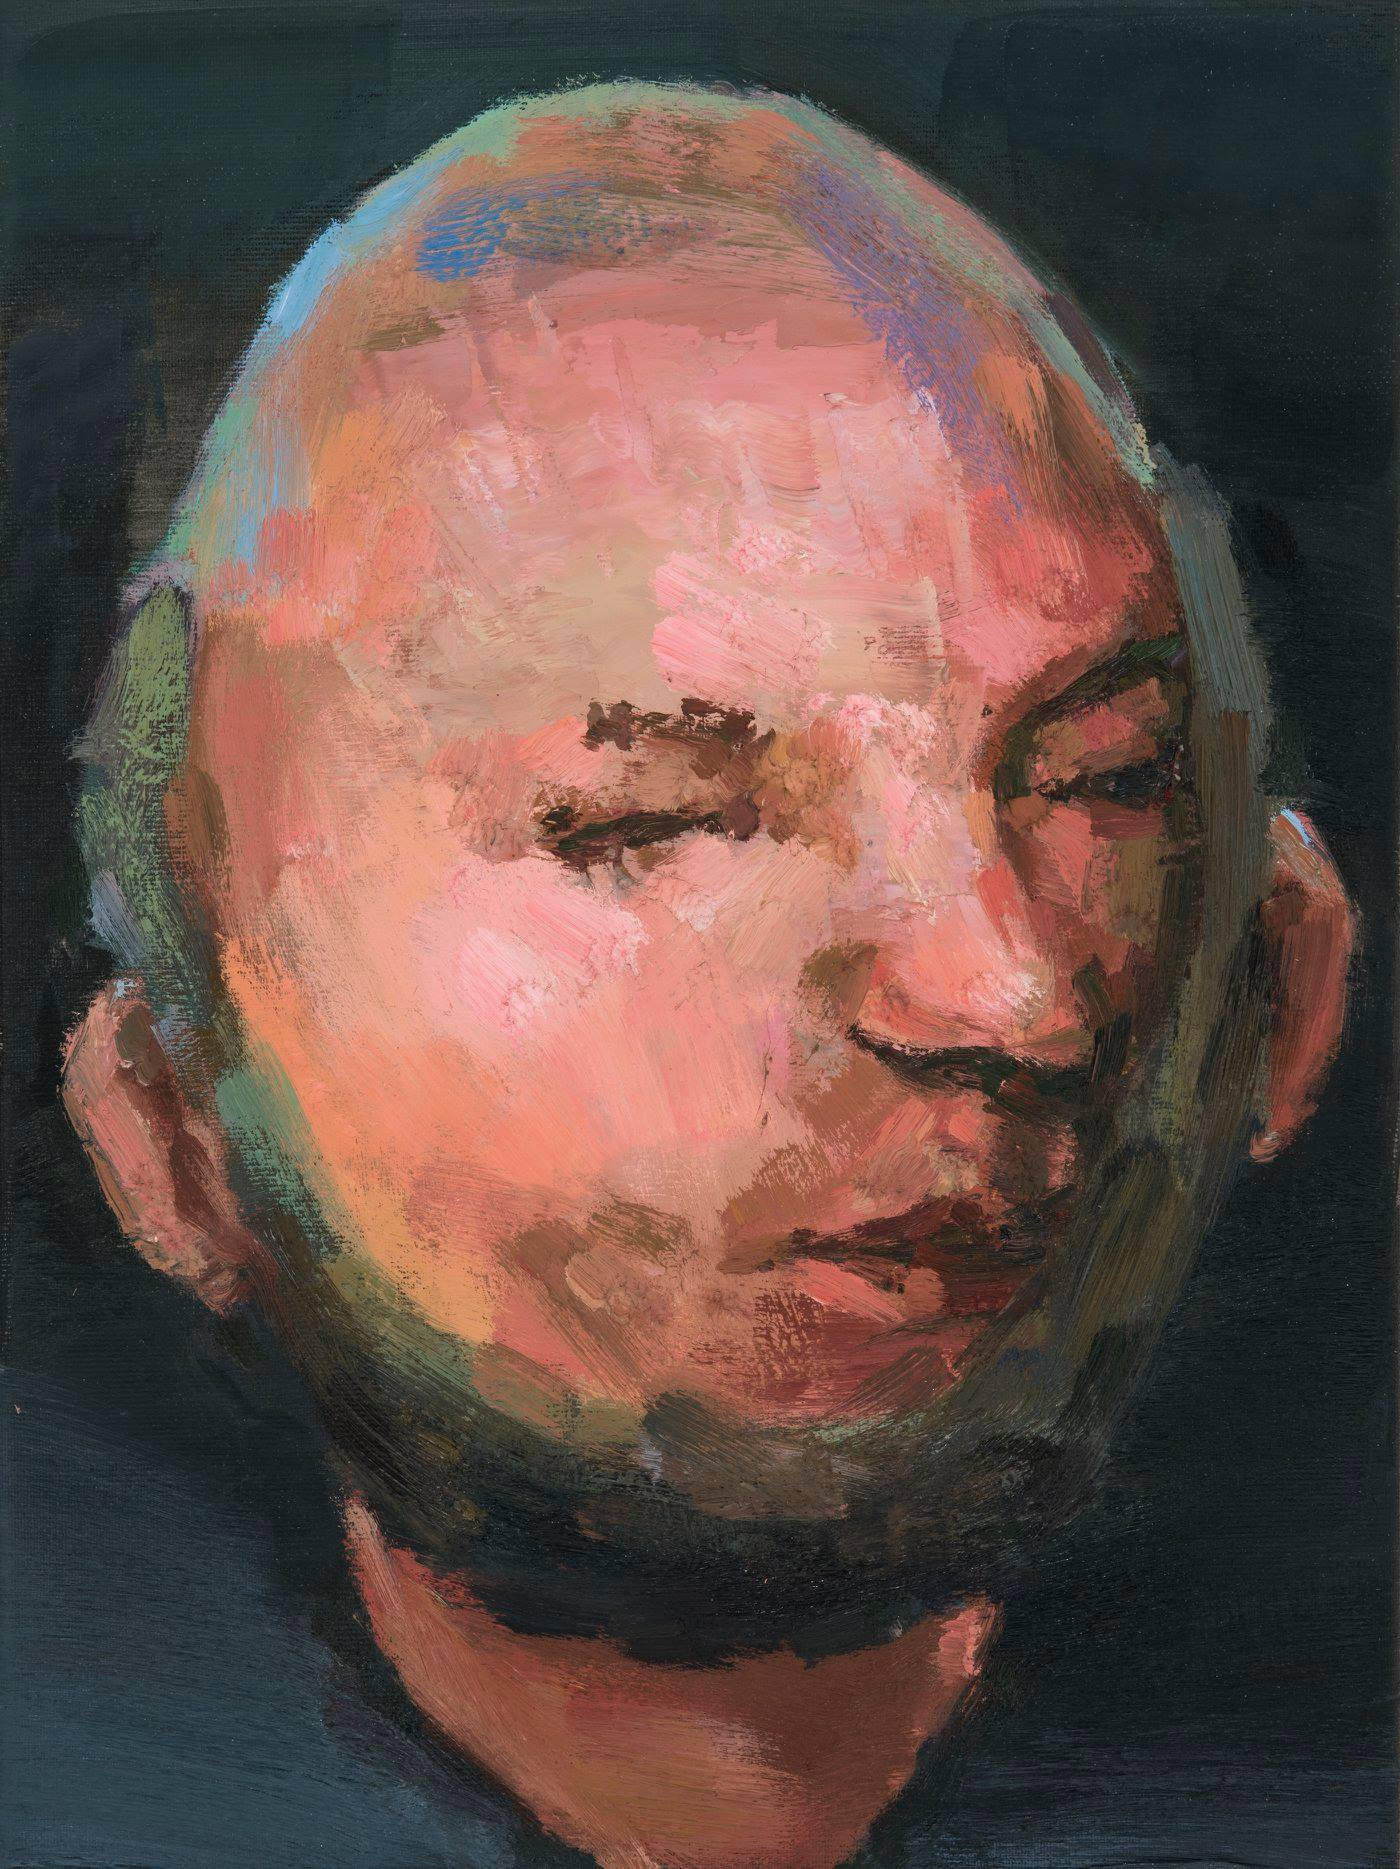 Apostle II, oil on canvas, 40x30, 2018